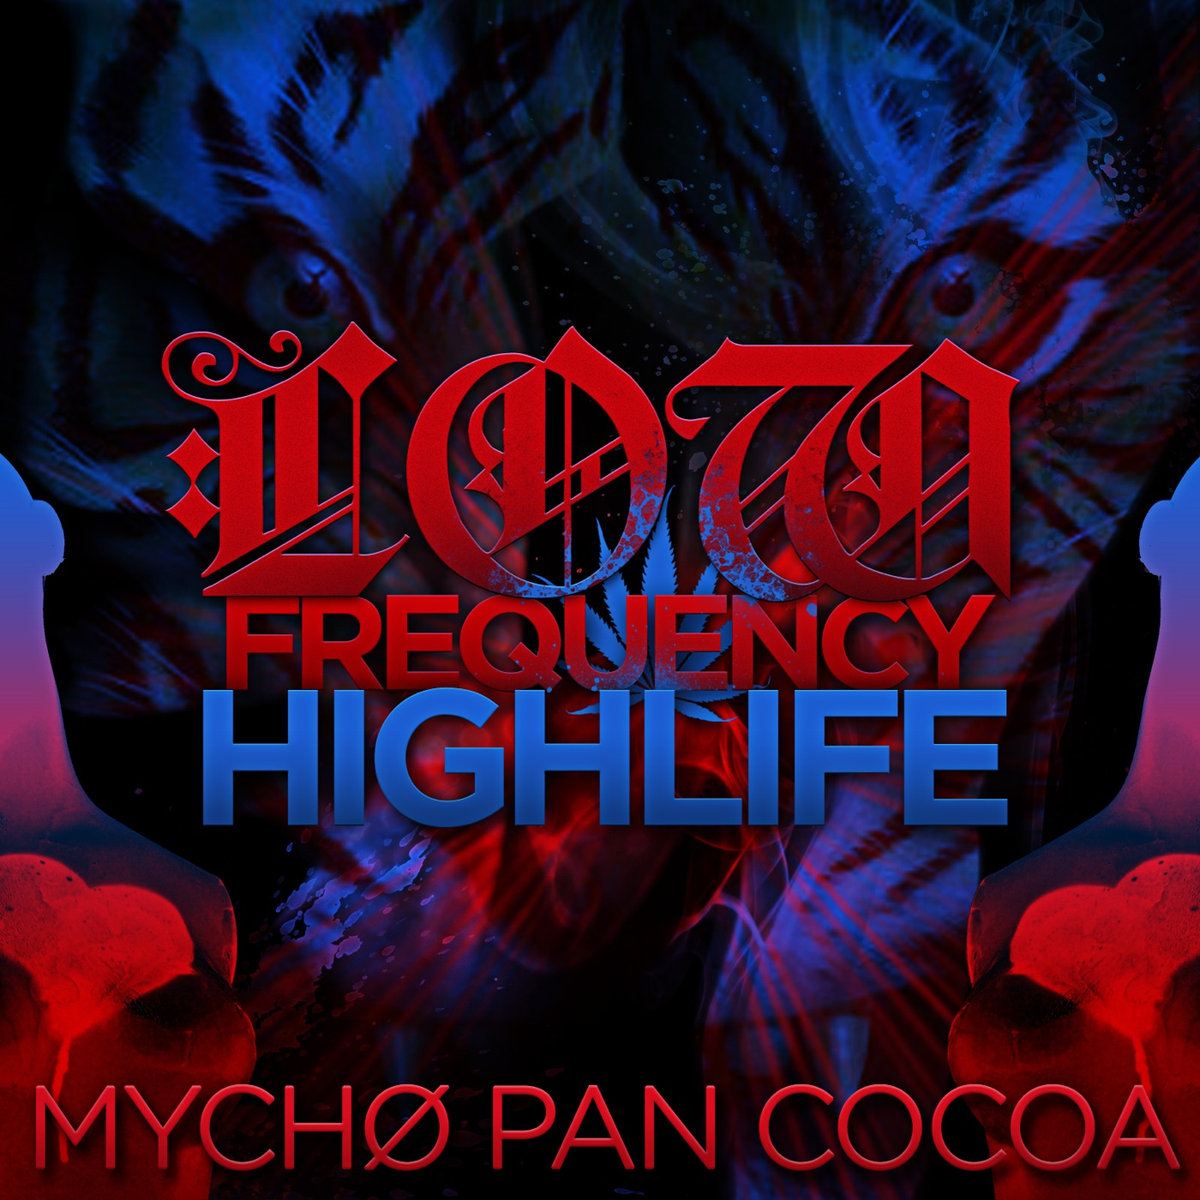 Mycho Pan Cocoa - Low Frequency High Life